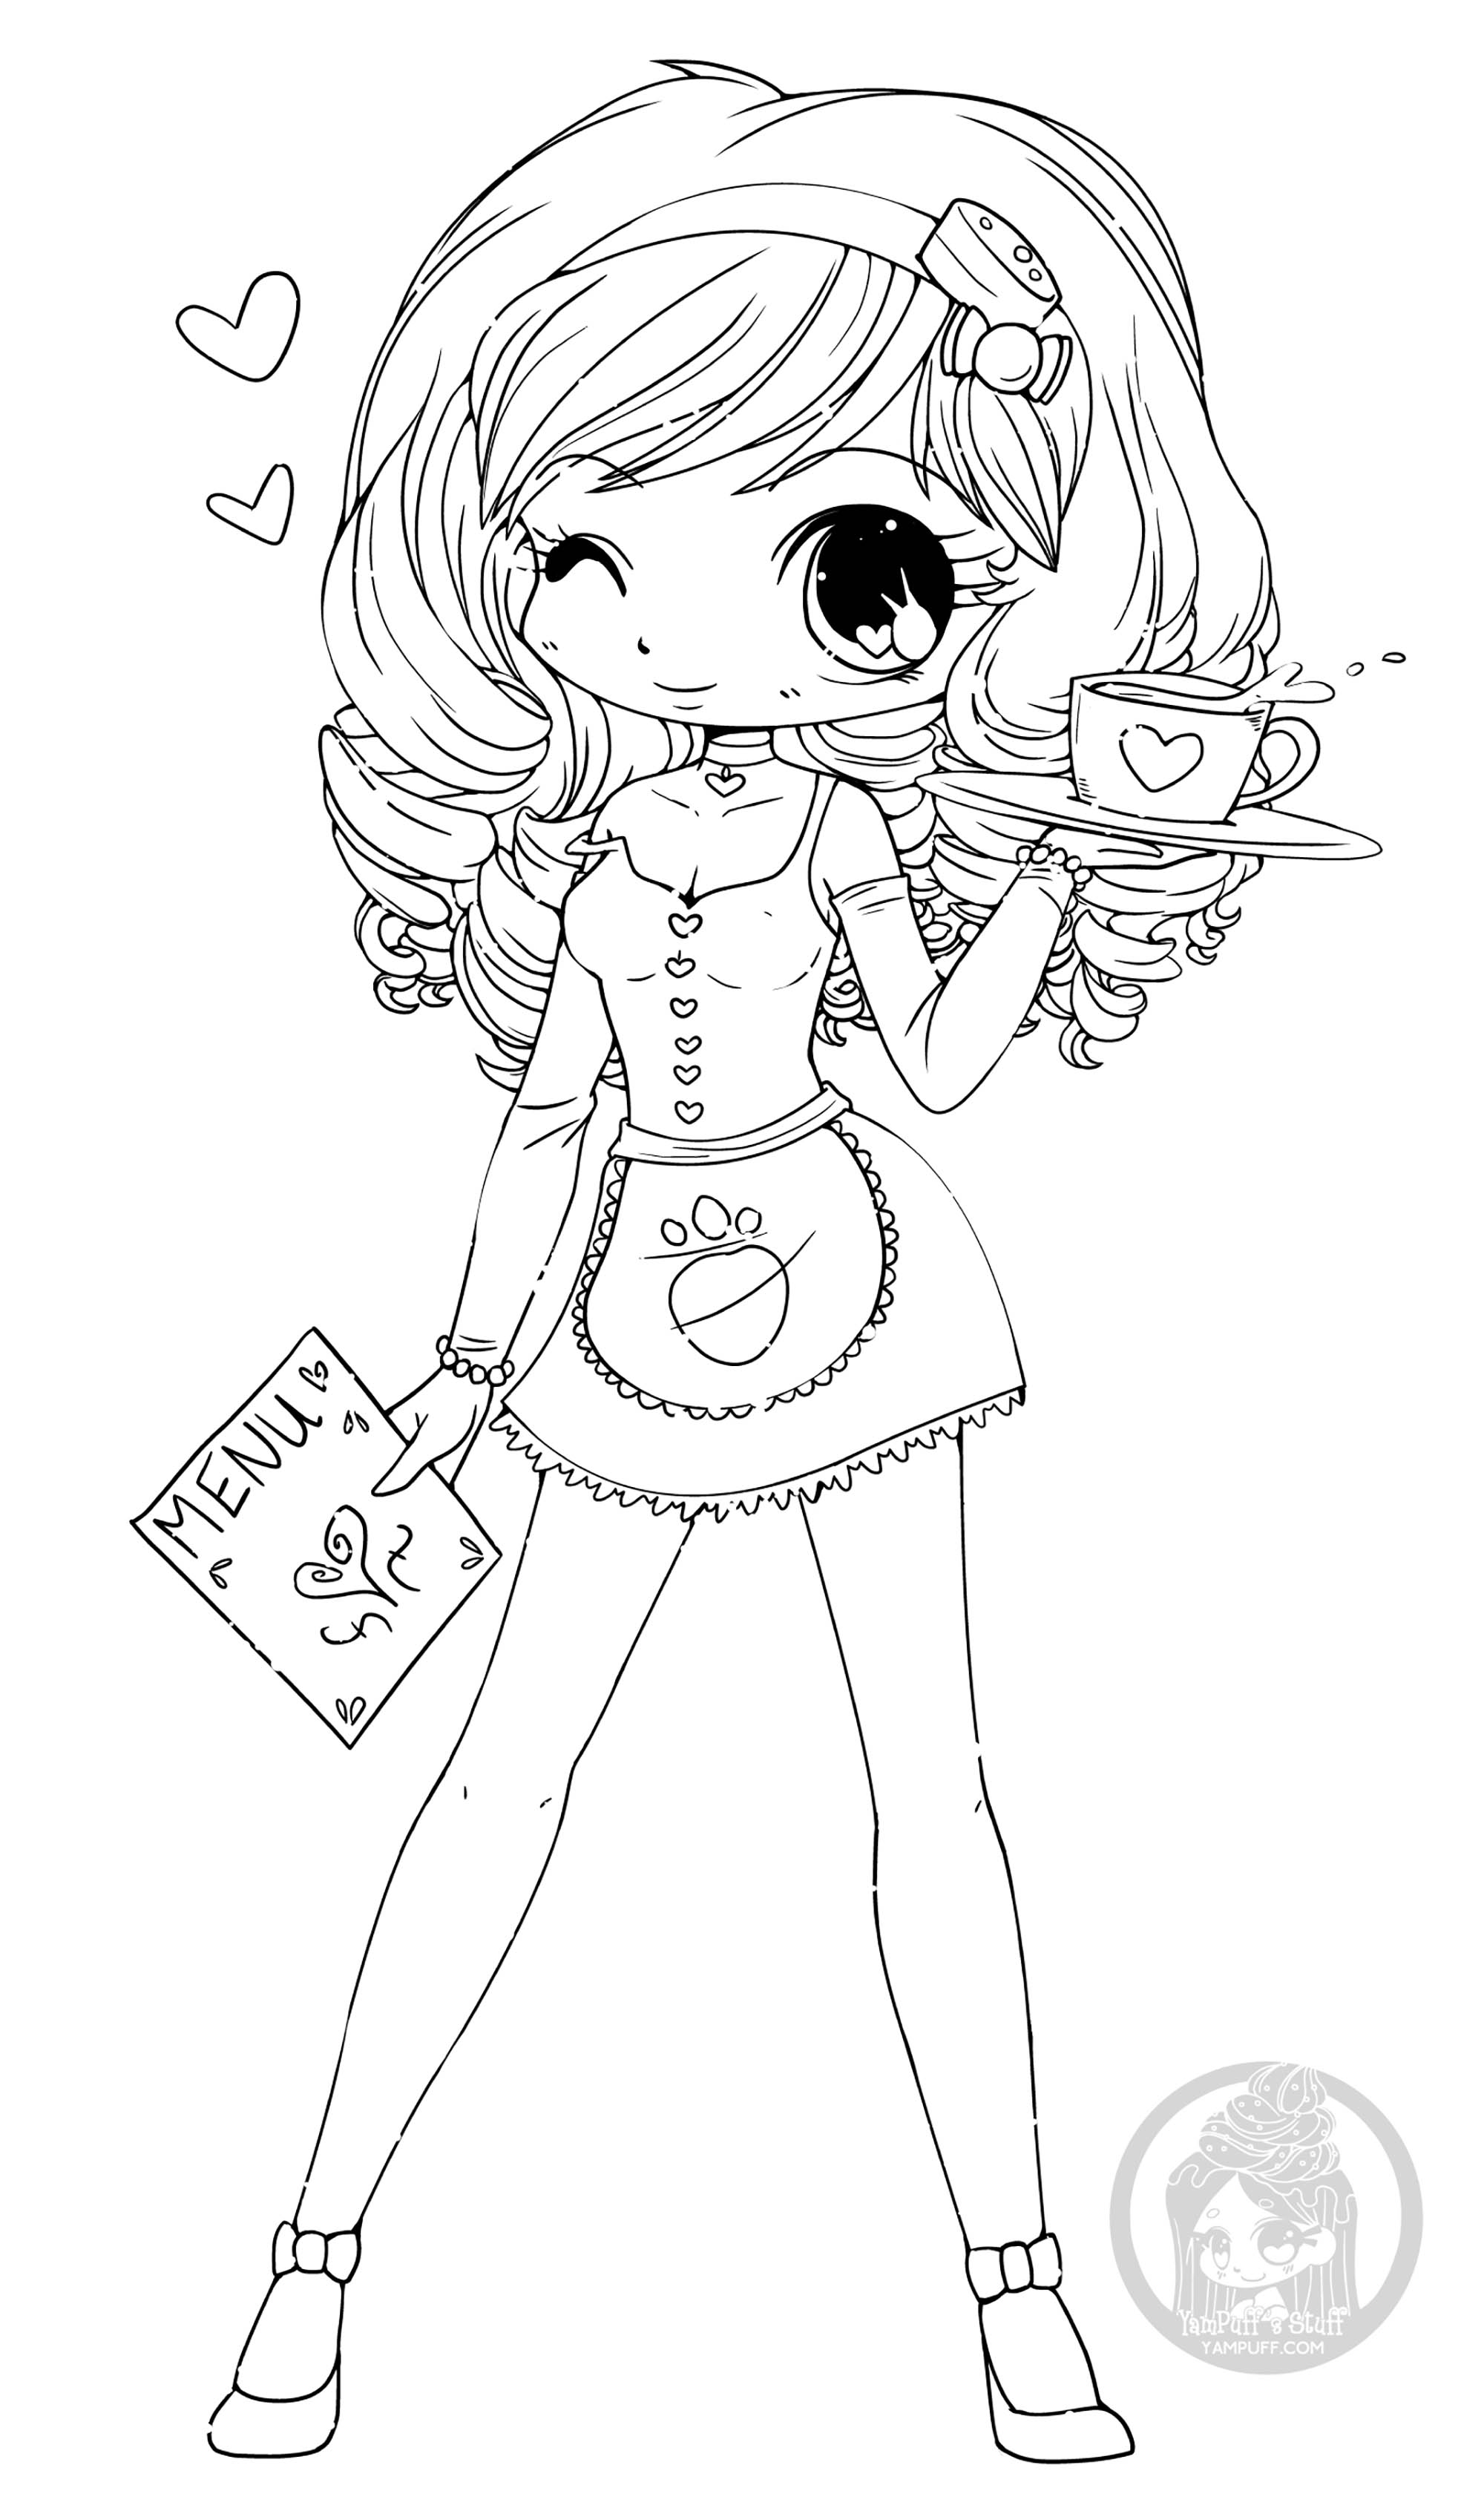 This cute girl winks you to make you want to color her!